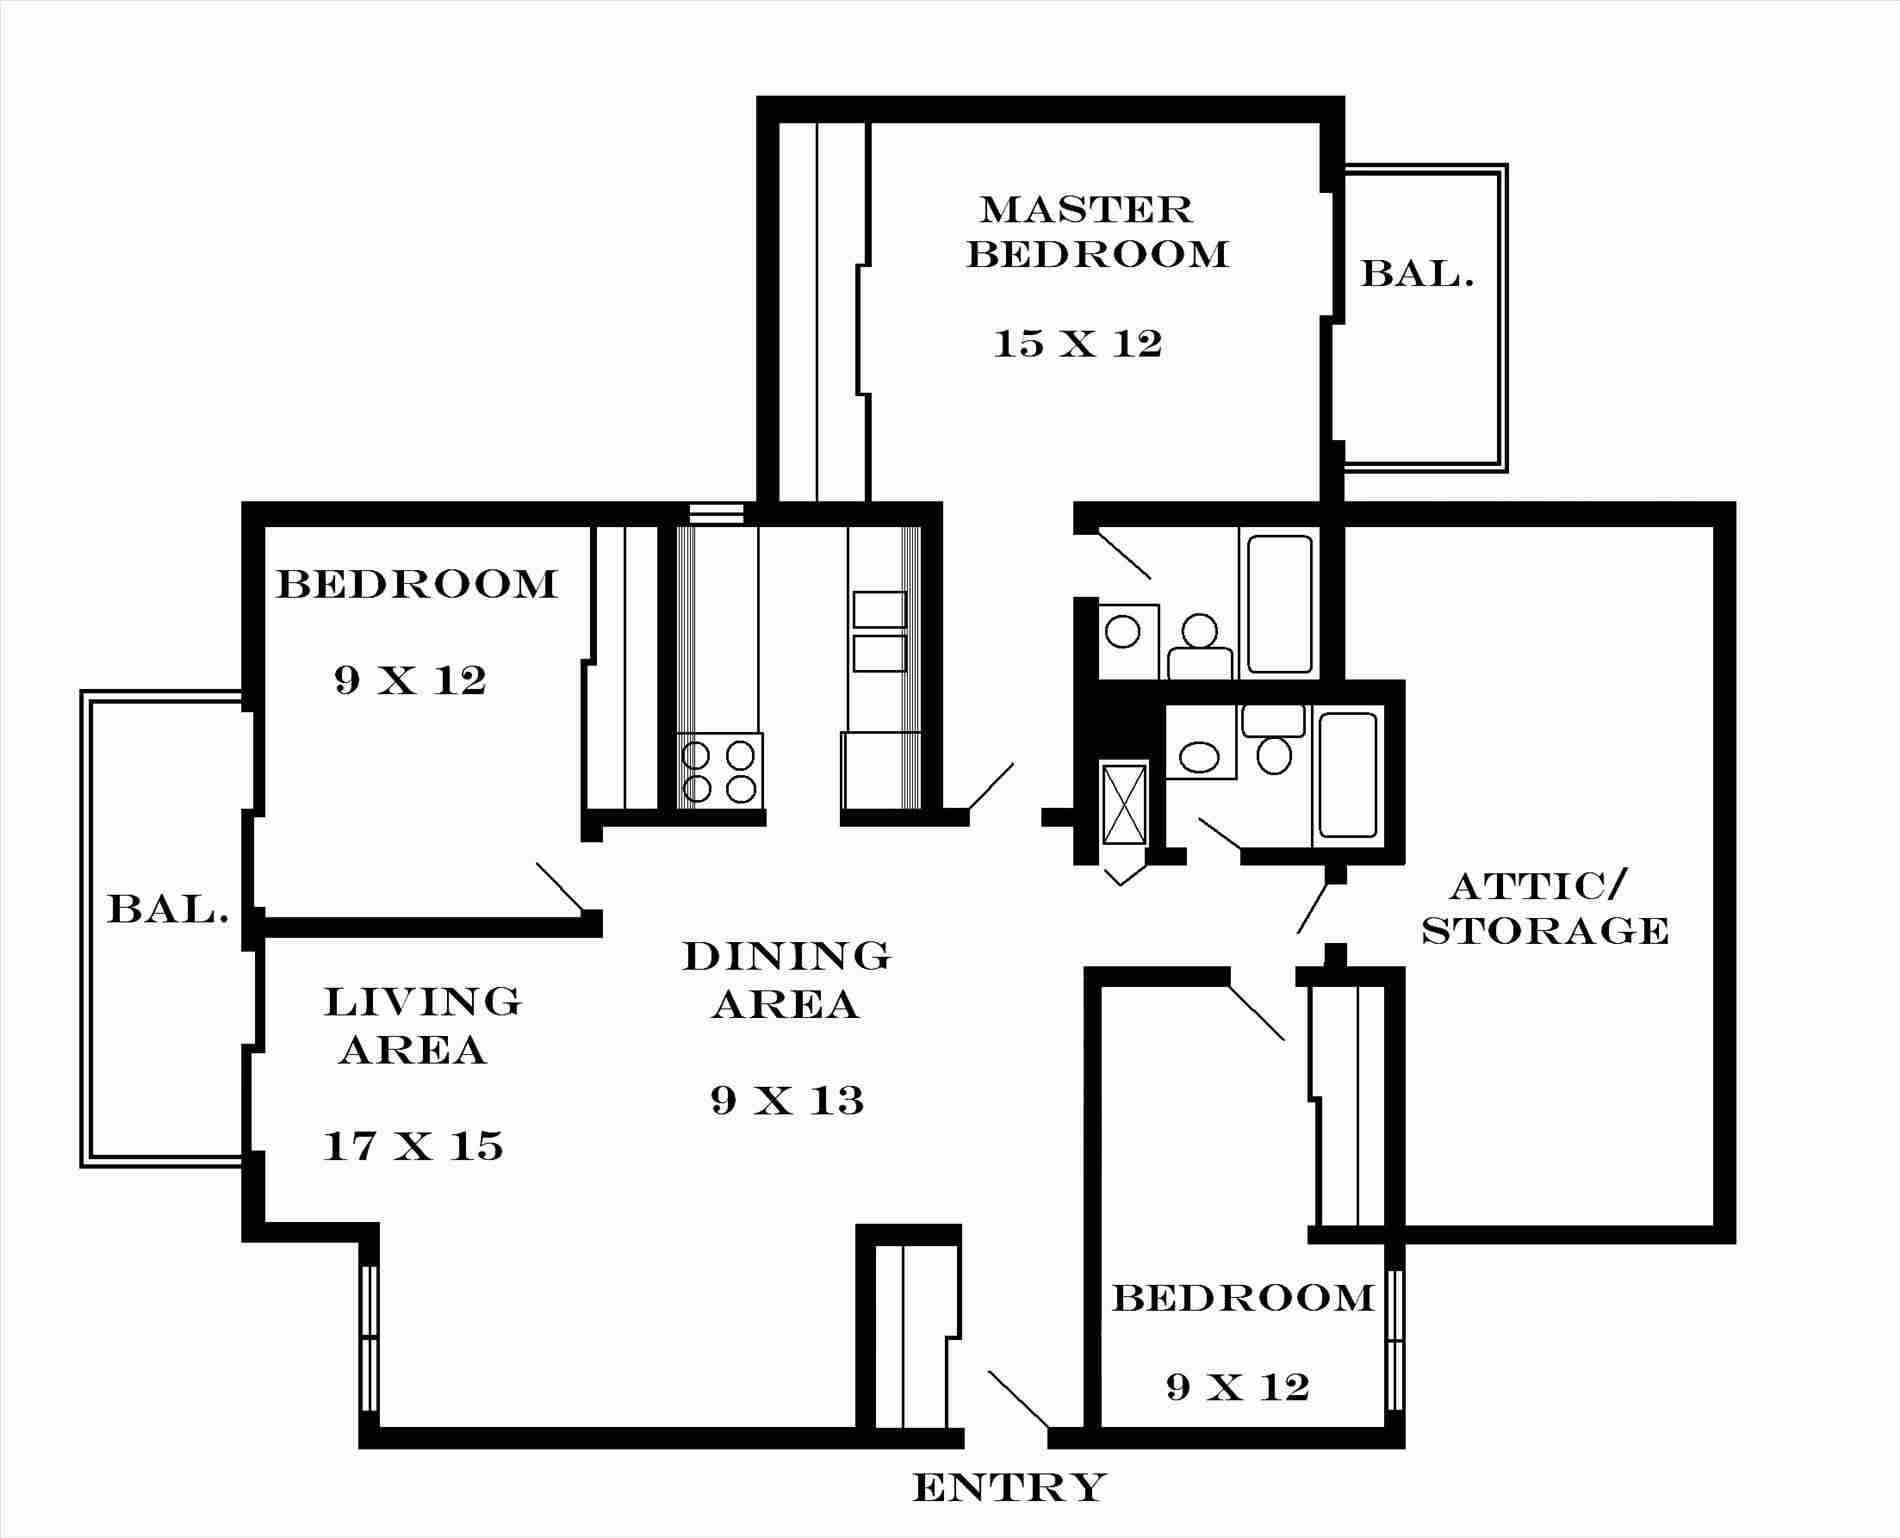 3 Bedroom Flat Plan Drawing 3 Bedroom Floor Plan Floor Plans Bedroom Floor Plans